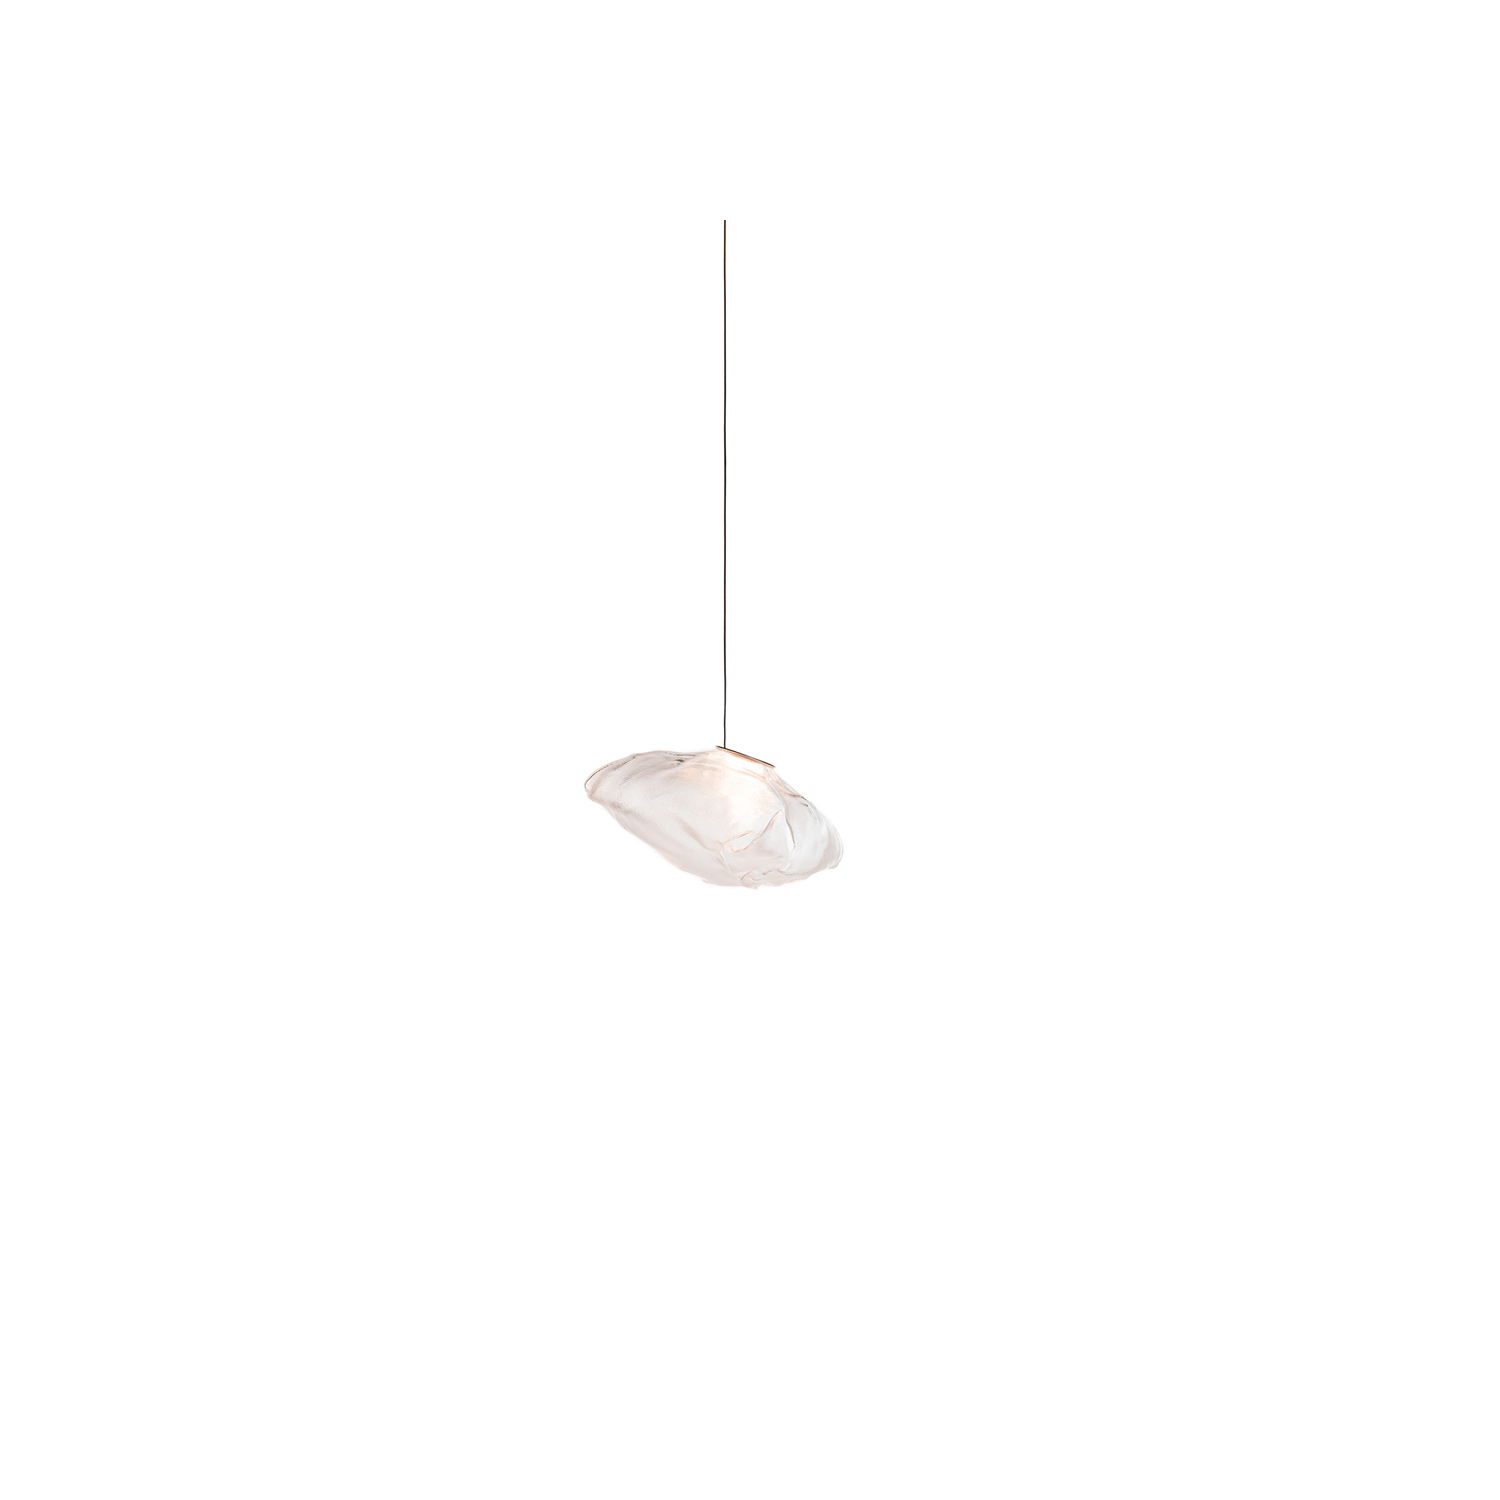 "73.1 Pendant Light - The 73.1 shallow canopy is a single 73 pendant fixture with a shallow brushed nickel canopy designed to fit over a new or existing 4"" octagonal junction box.